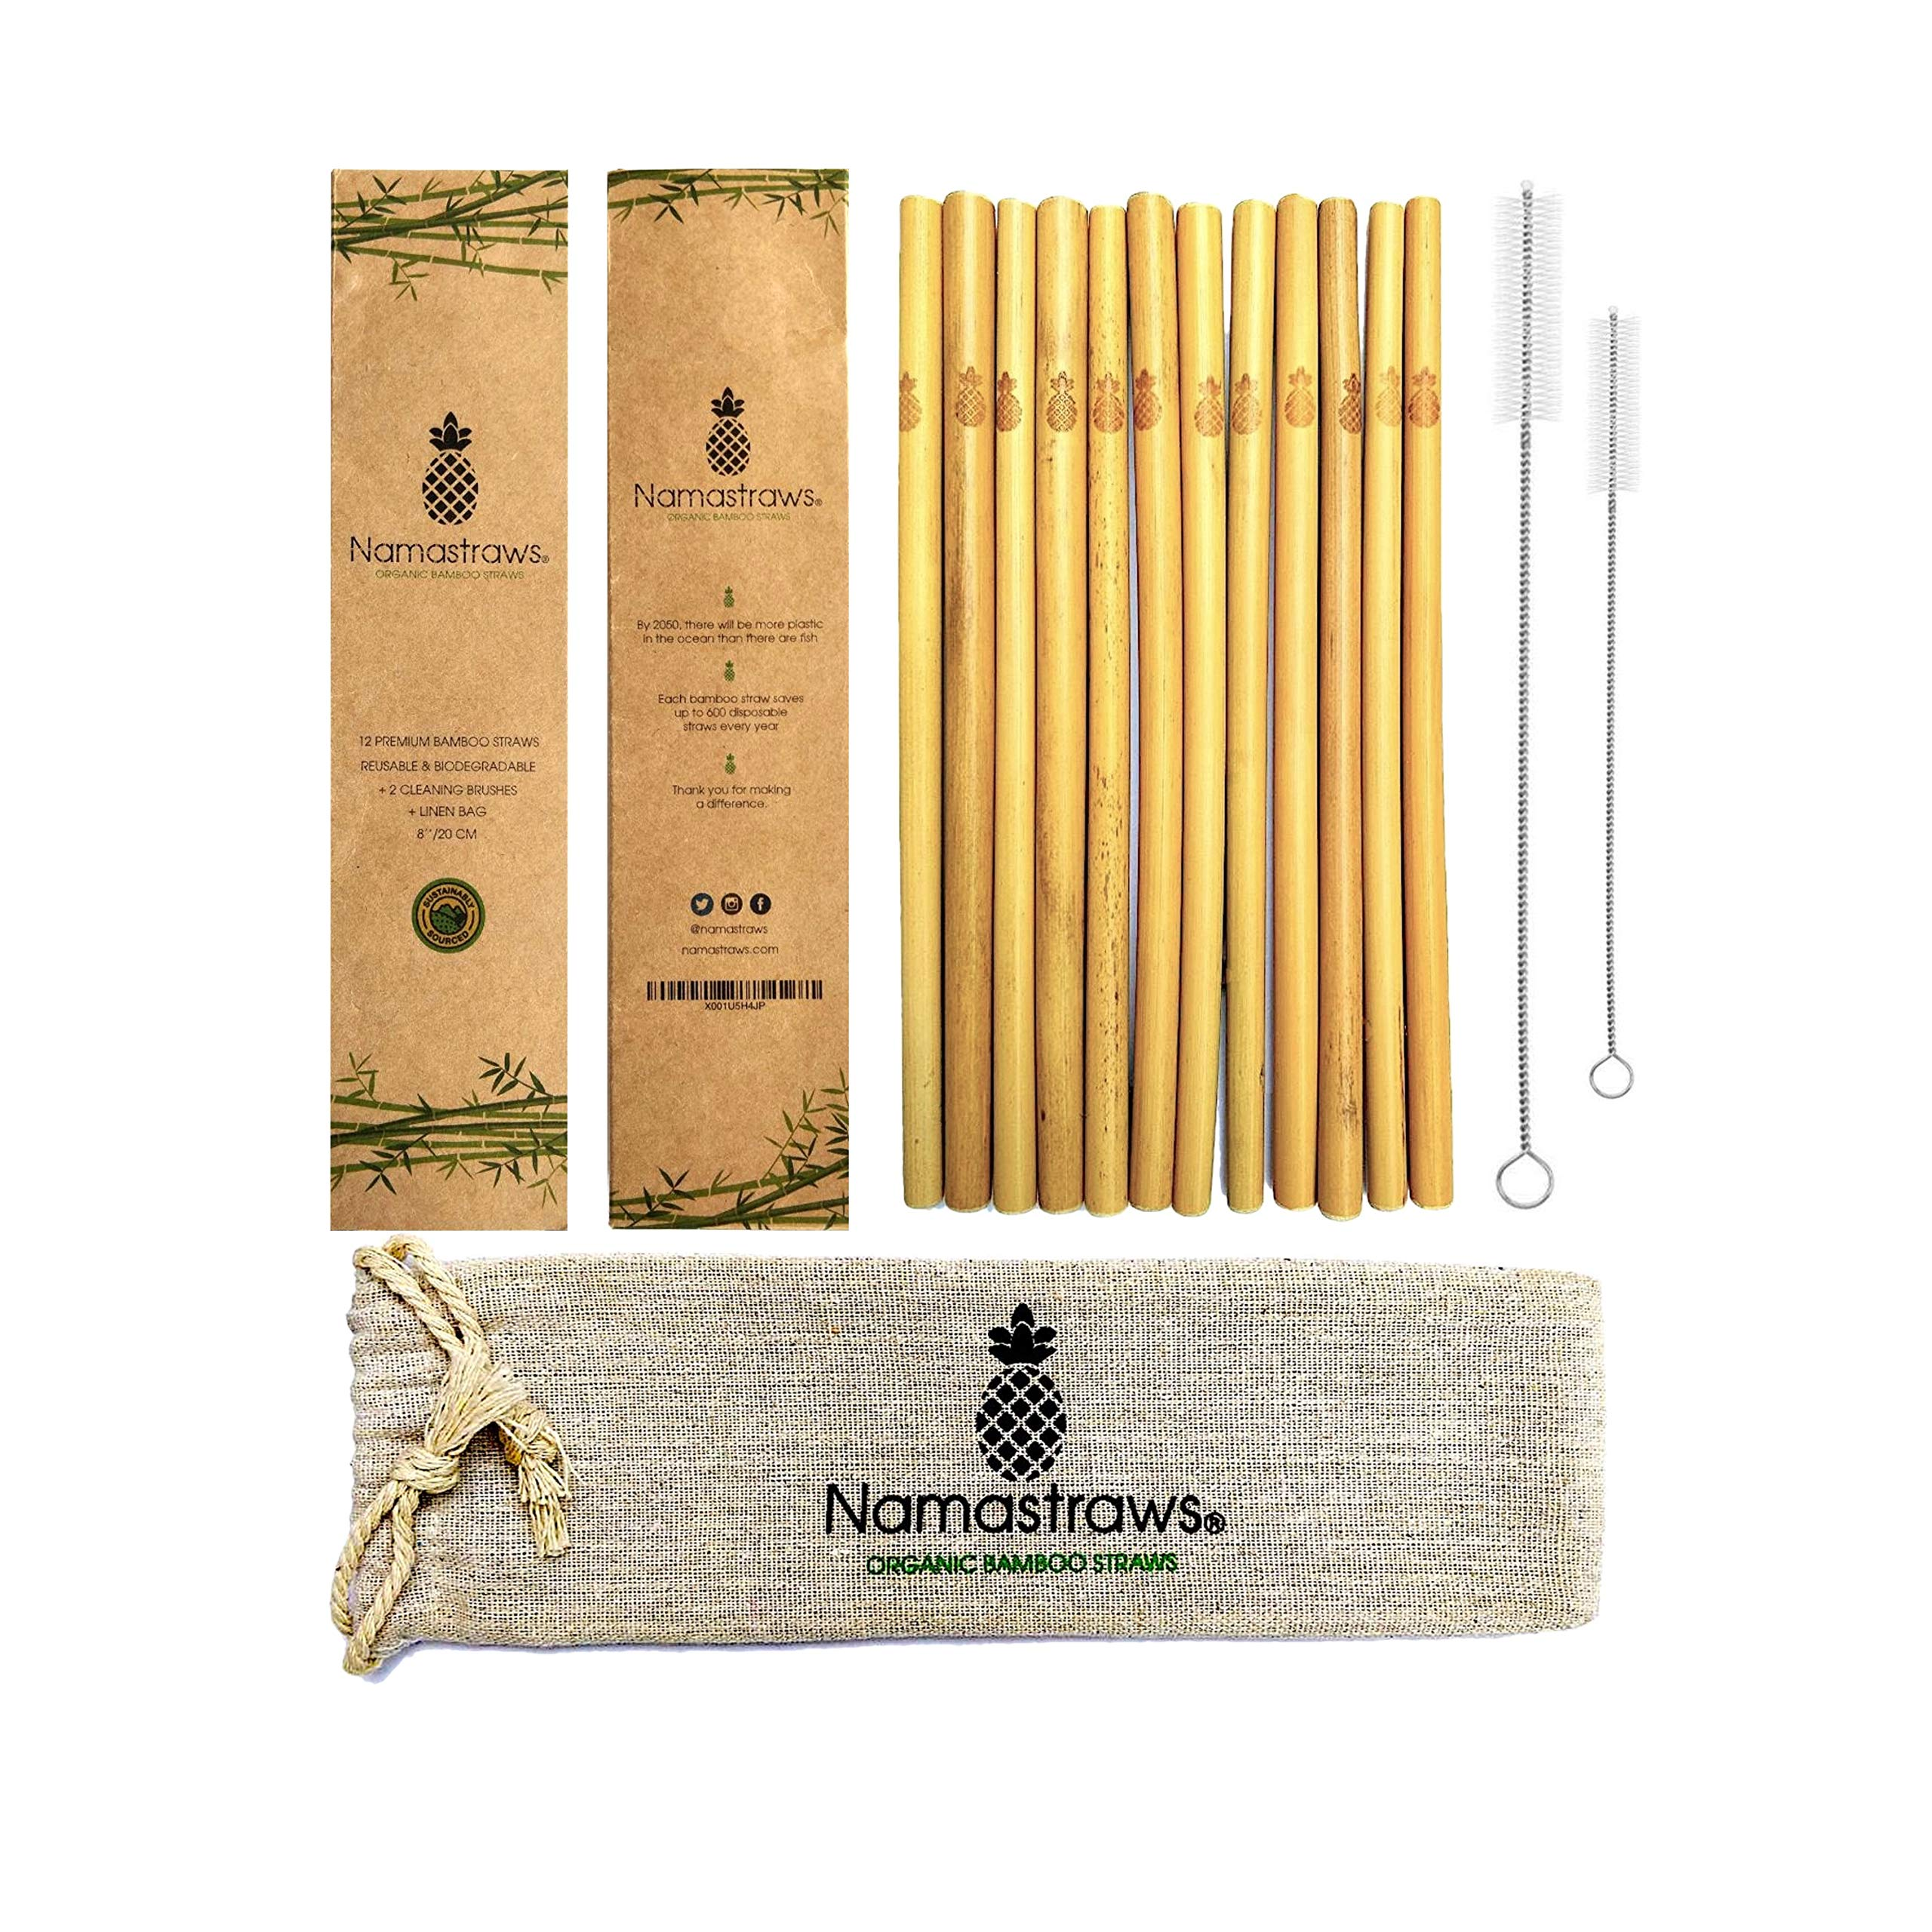 Namastraws - Organic Bamboo Drinking Straws - 15 Pack - Set of 12 8'' NMS + 2 Size Cleaners + Carrying Bag - Reusable, Strong & Durable - Biodegradable Eco Friendly Best Alternative to Plastic